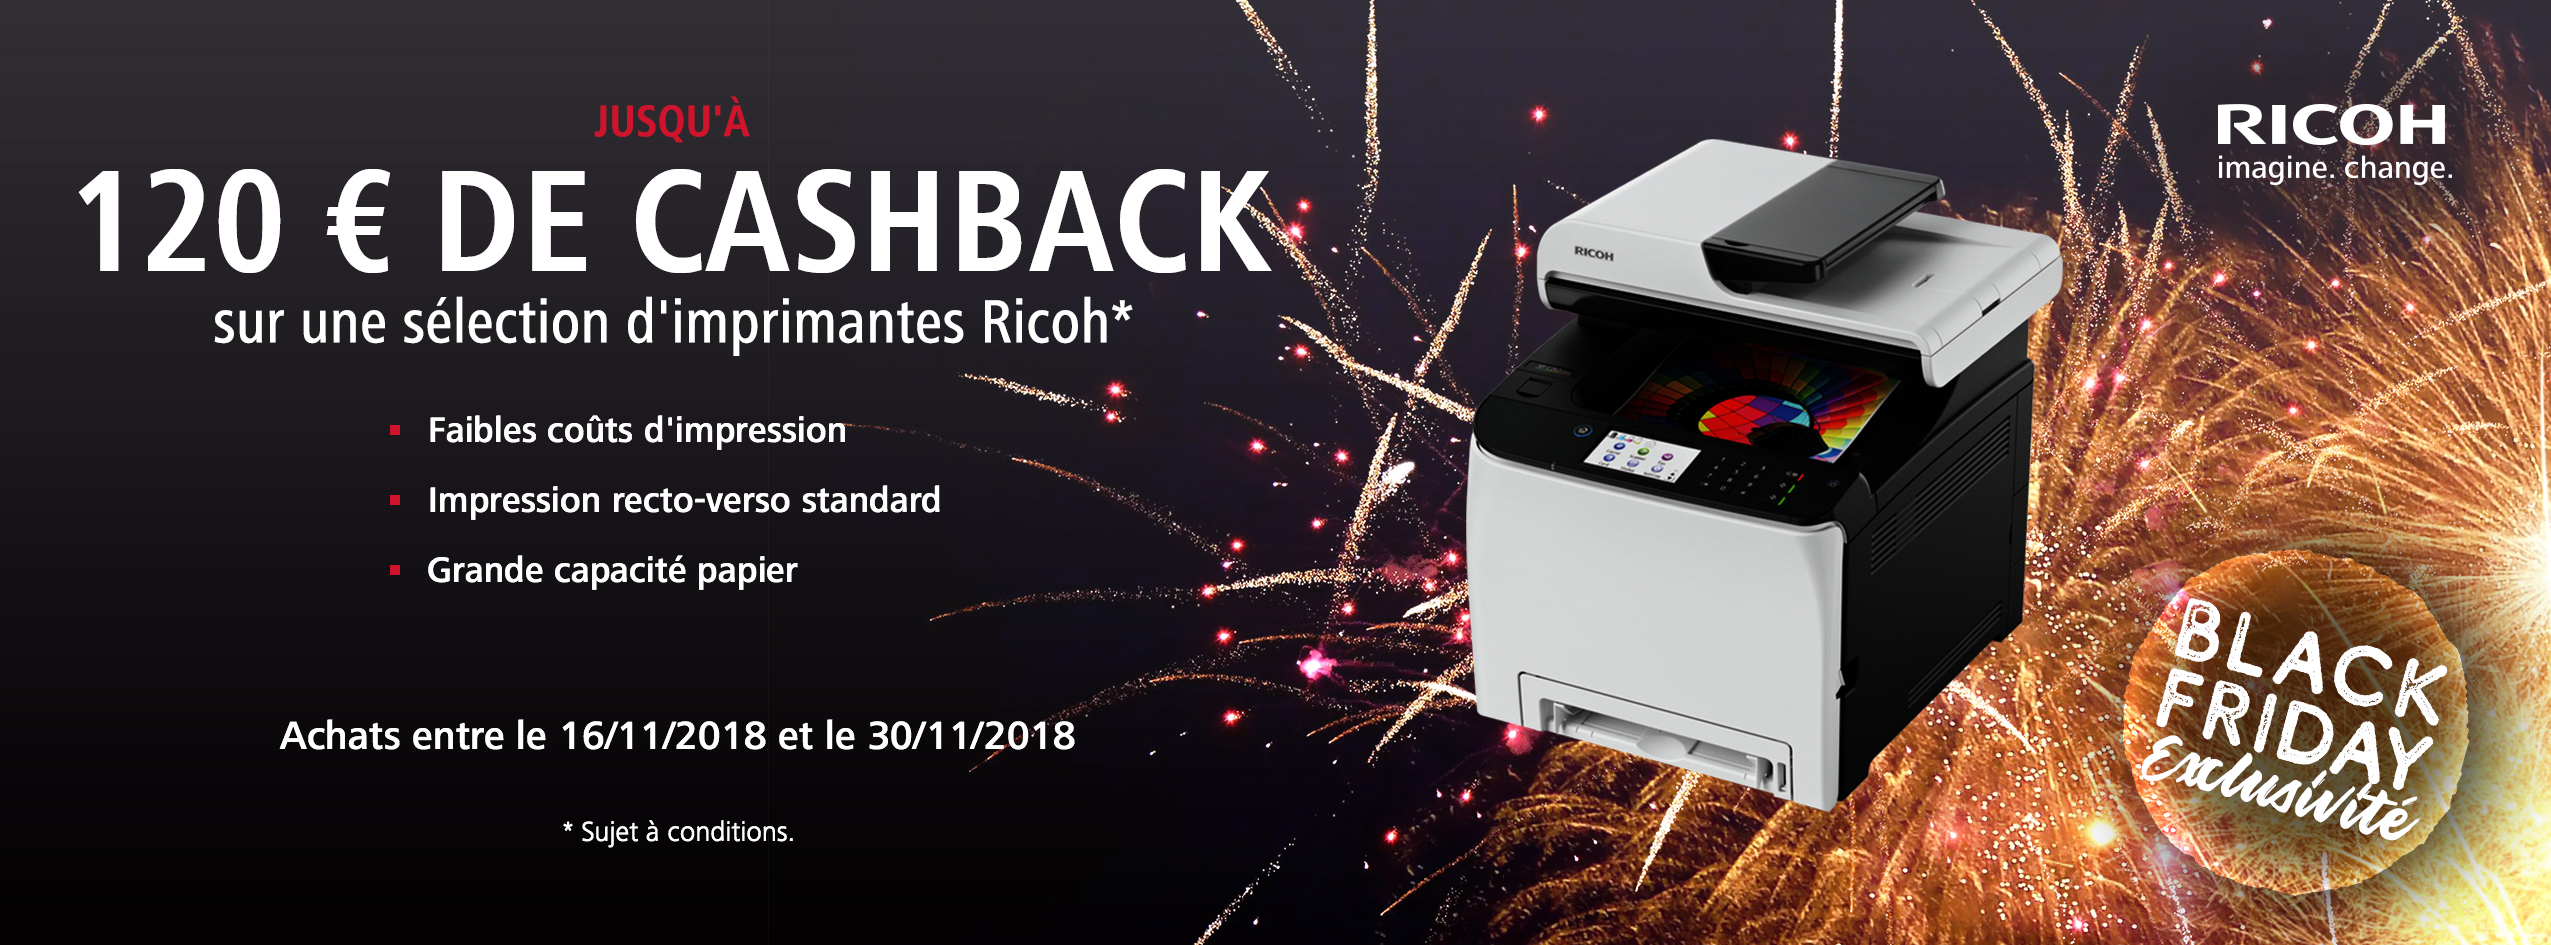 Ricoh Black Friday Accelerator Promotion - FR